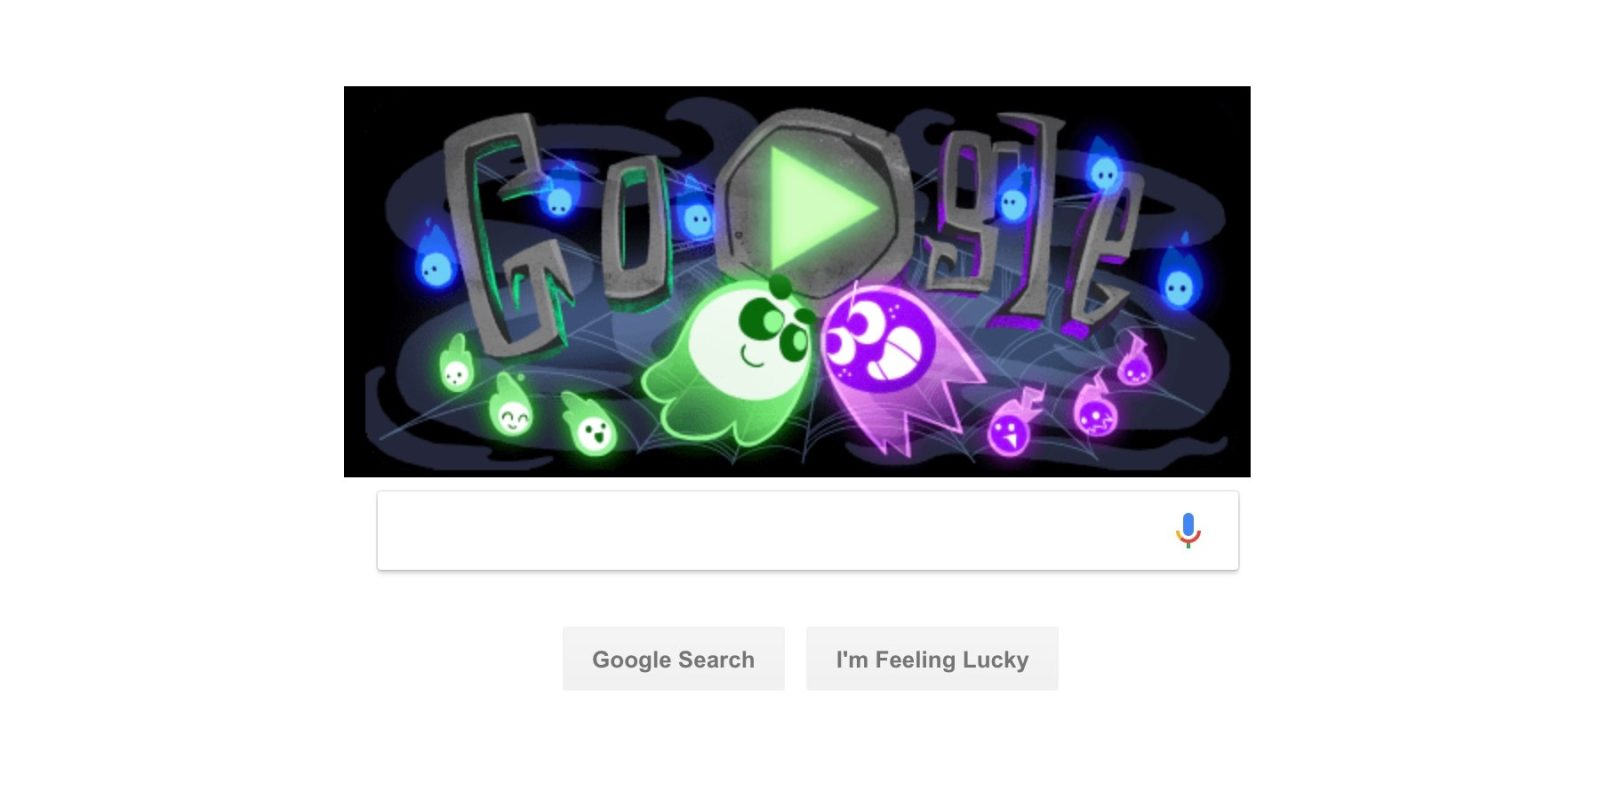 Google celebrates Halloween w/ multiplayer Doodle game